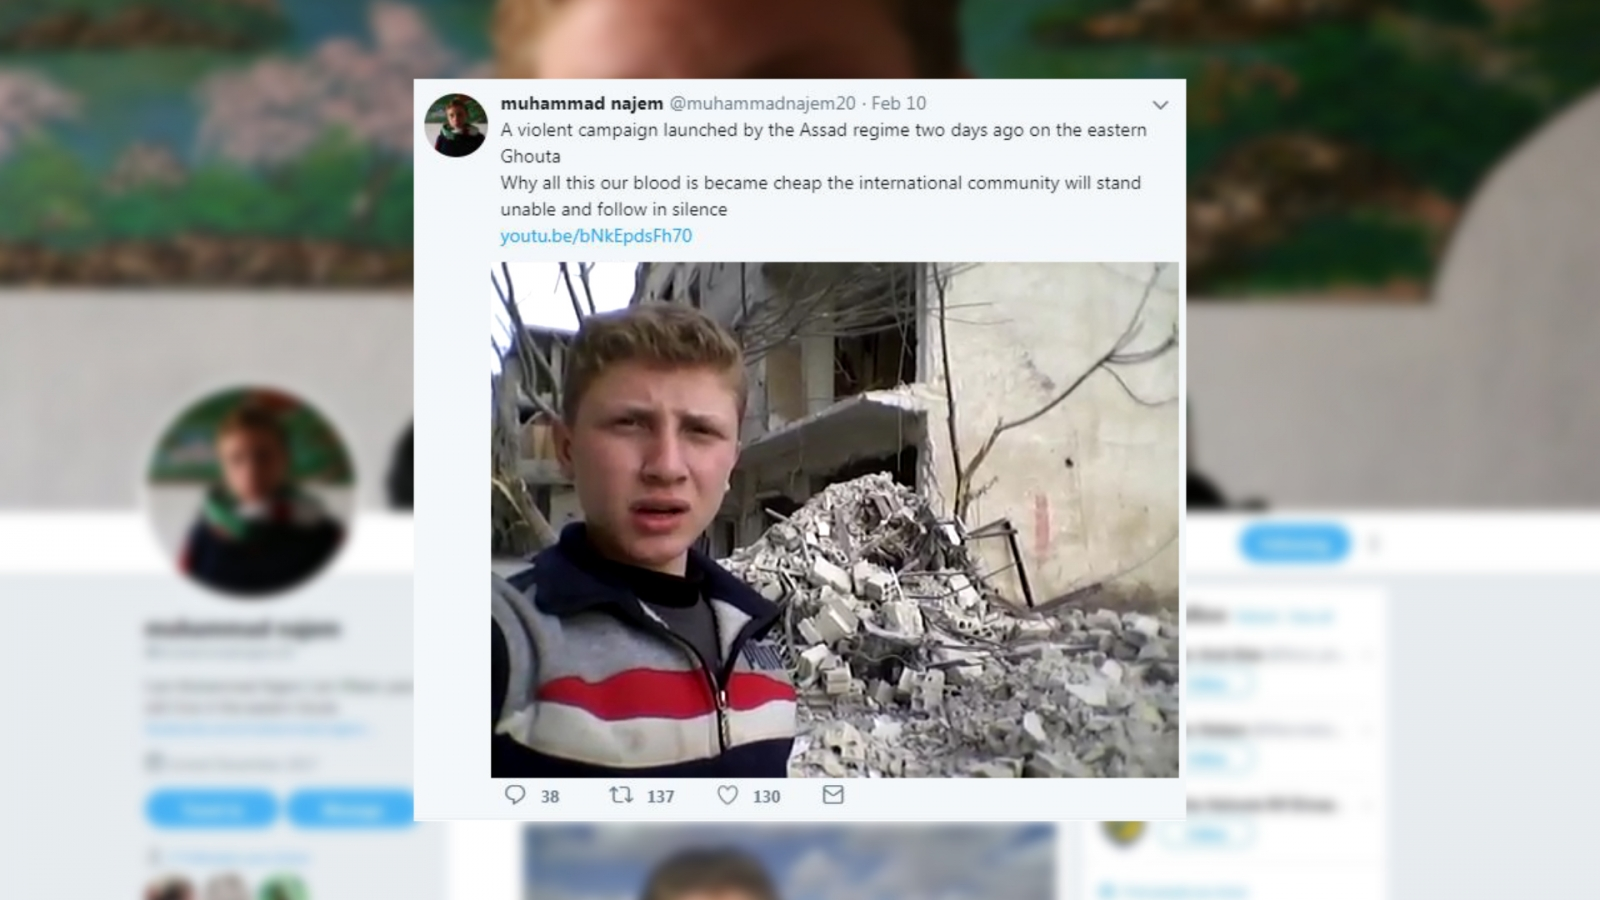 syrian-teenager-uses-twitter-to-share-experience-of-living-through-war